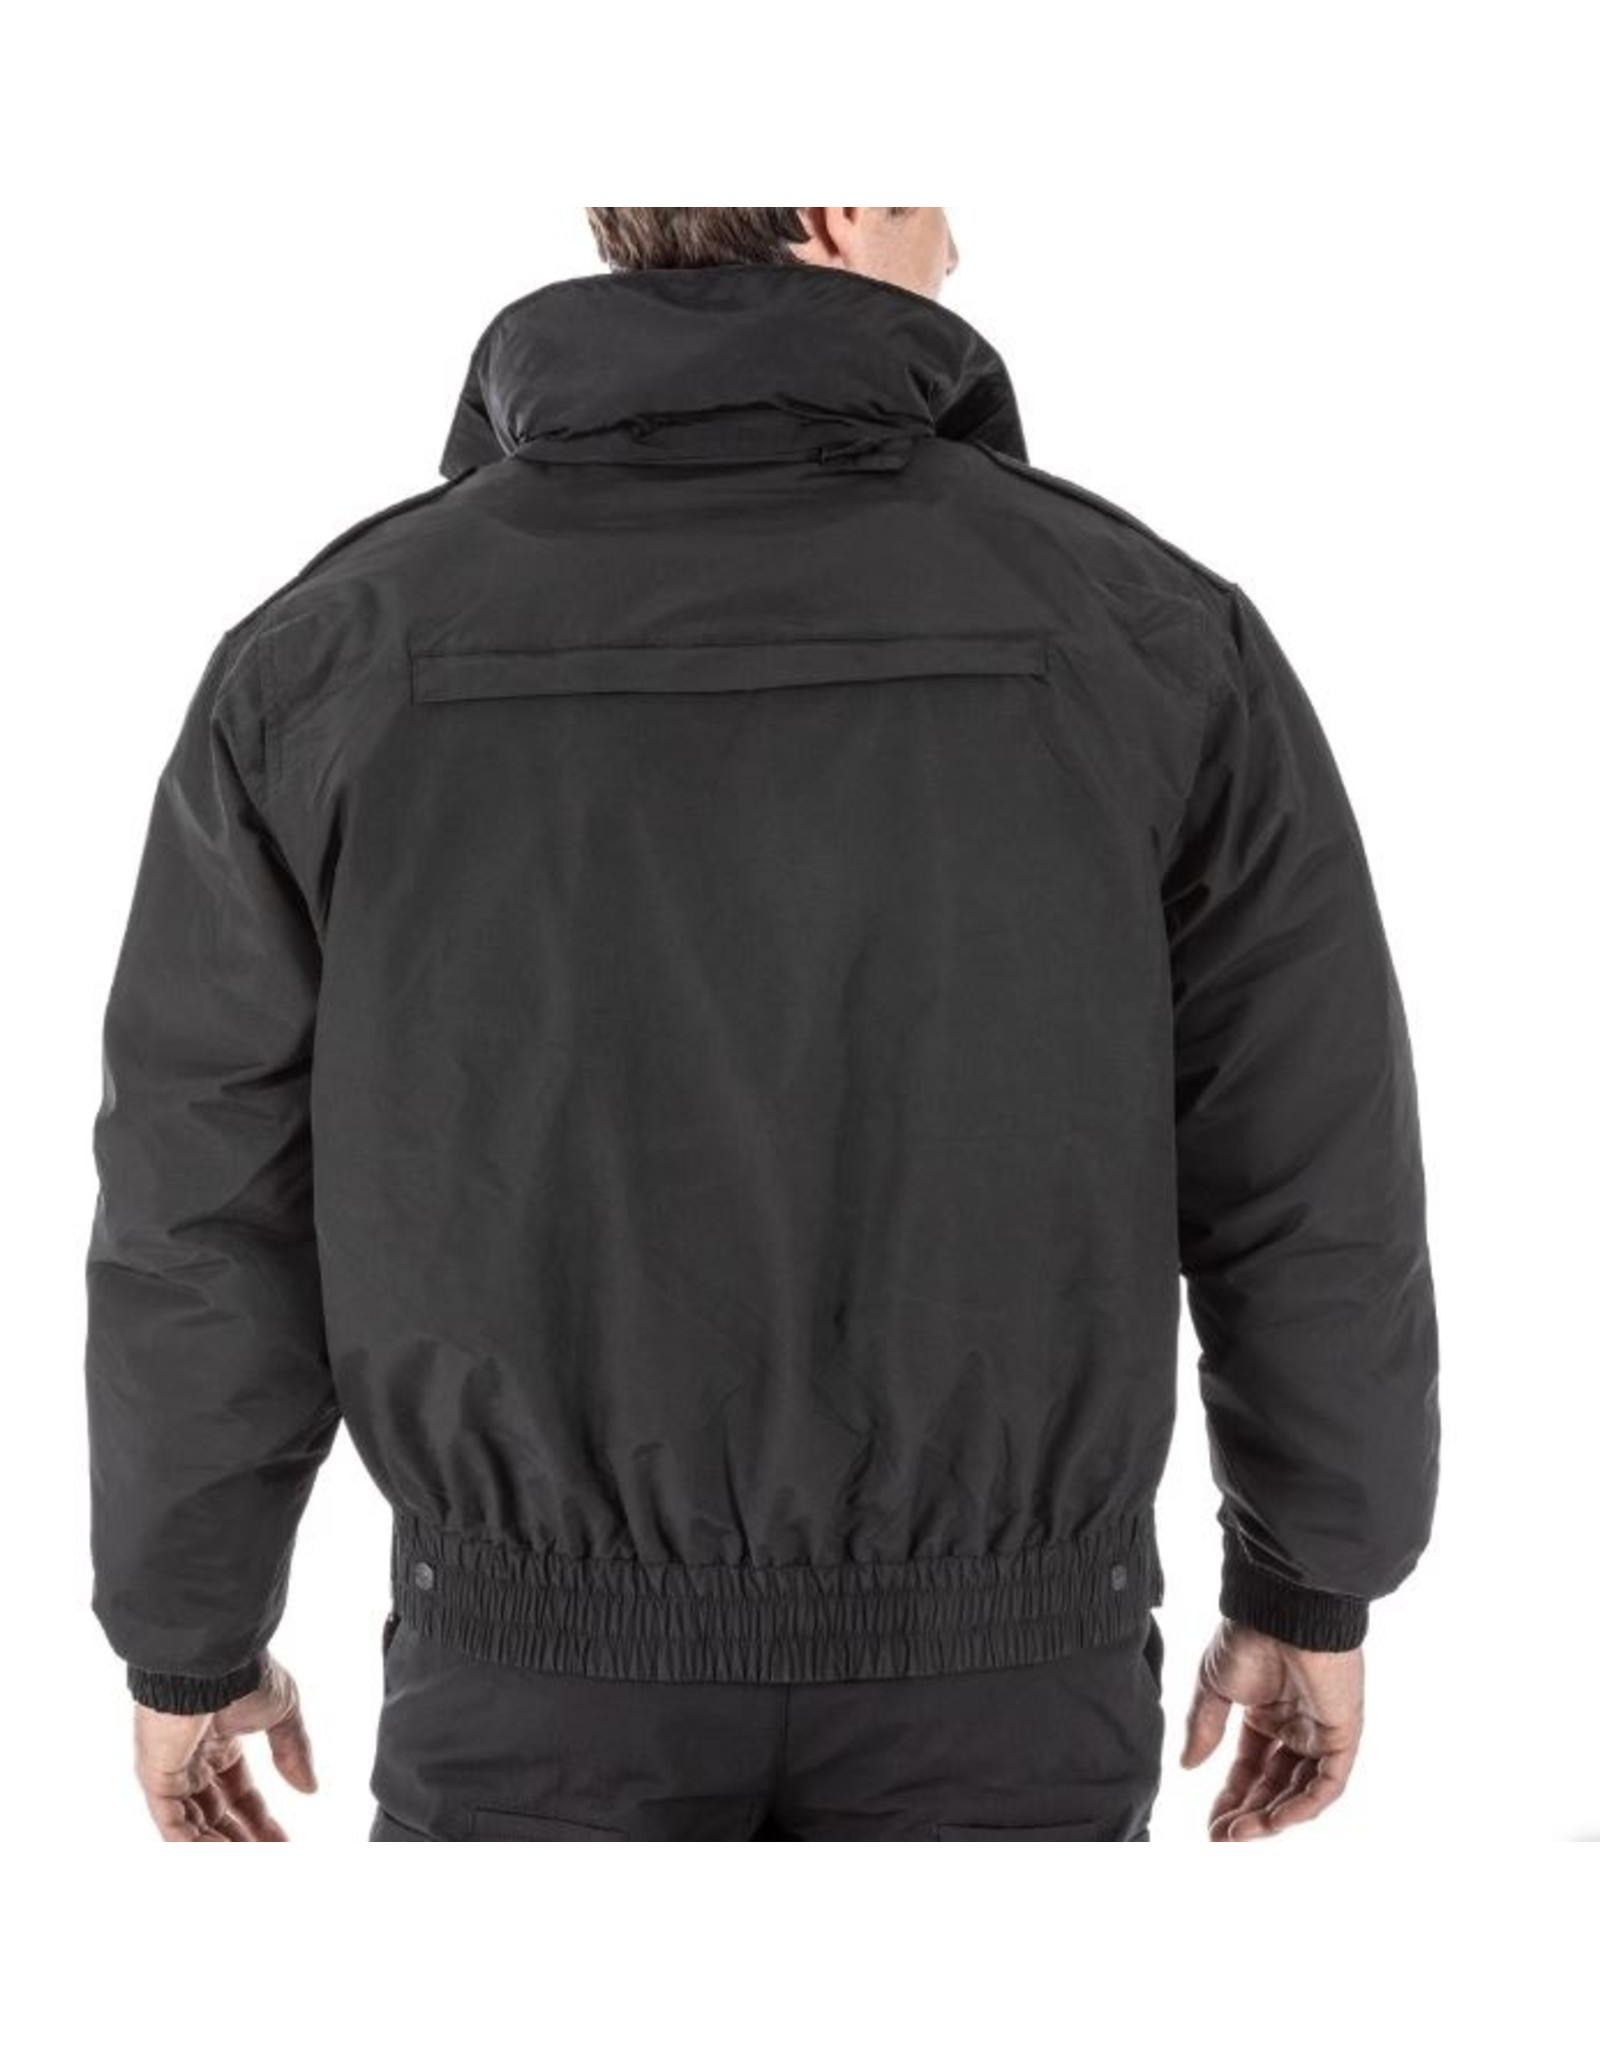 5.11 SIGNATURE DUTY JACKET - ONLINE ONLY